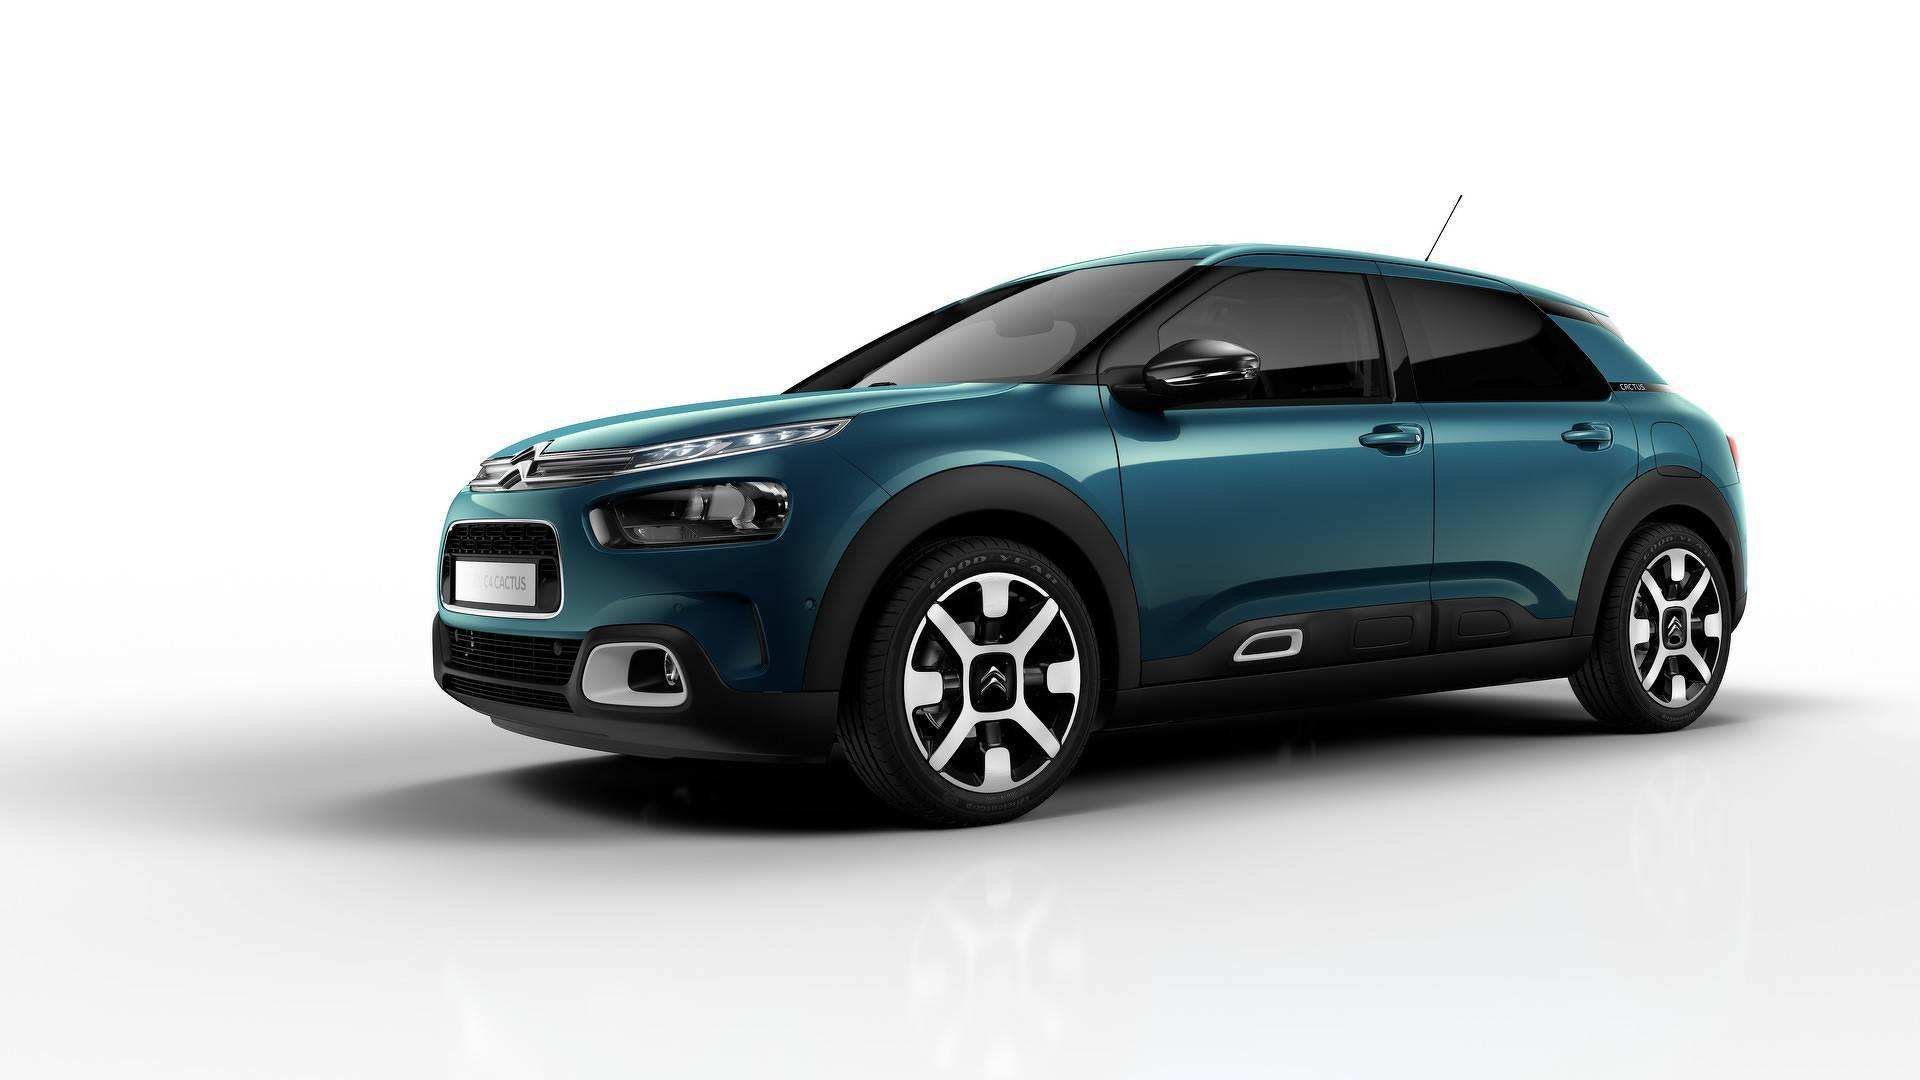 49 All New 2019 Citroen C4 Photos with 2019 Citroen C4